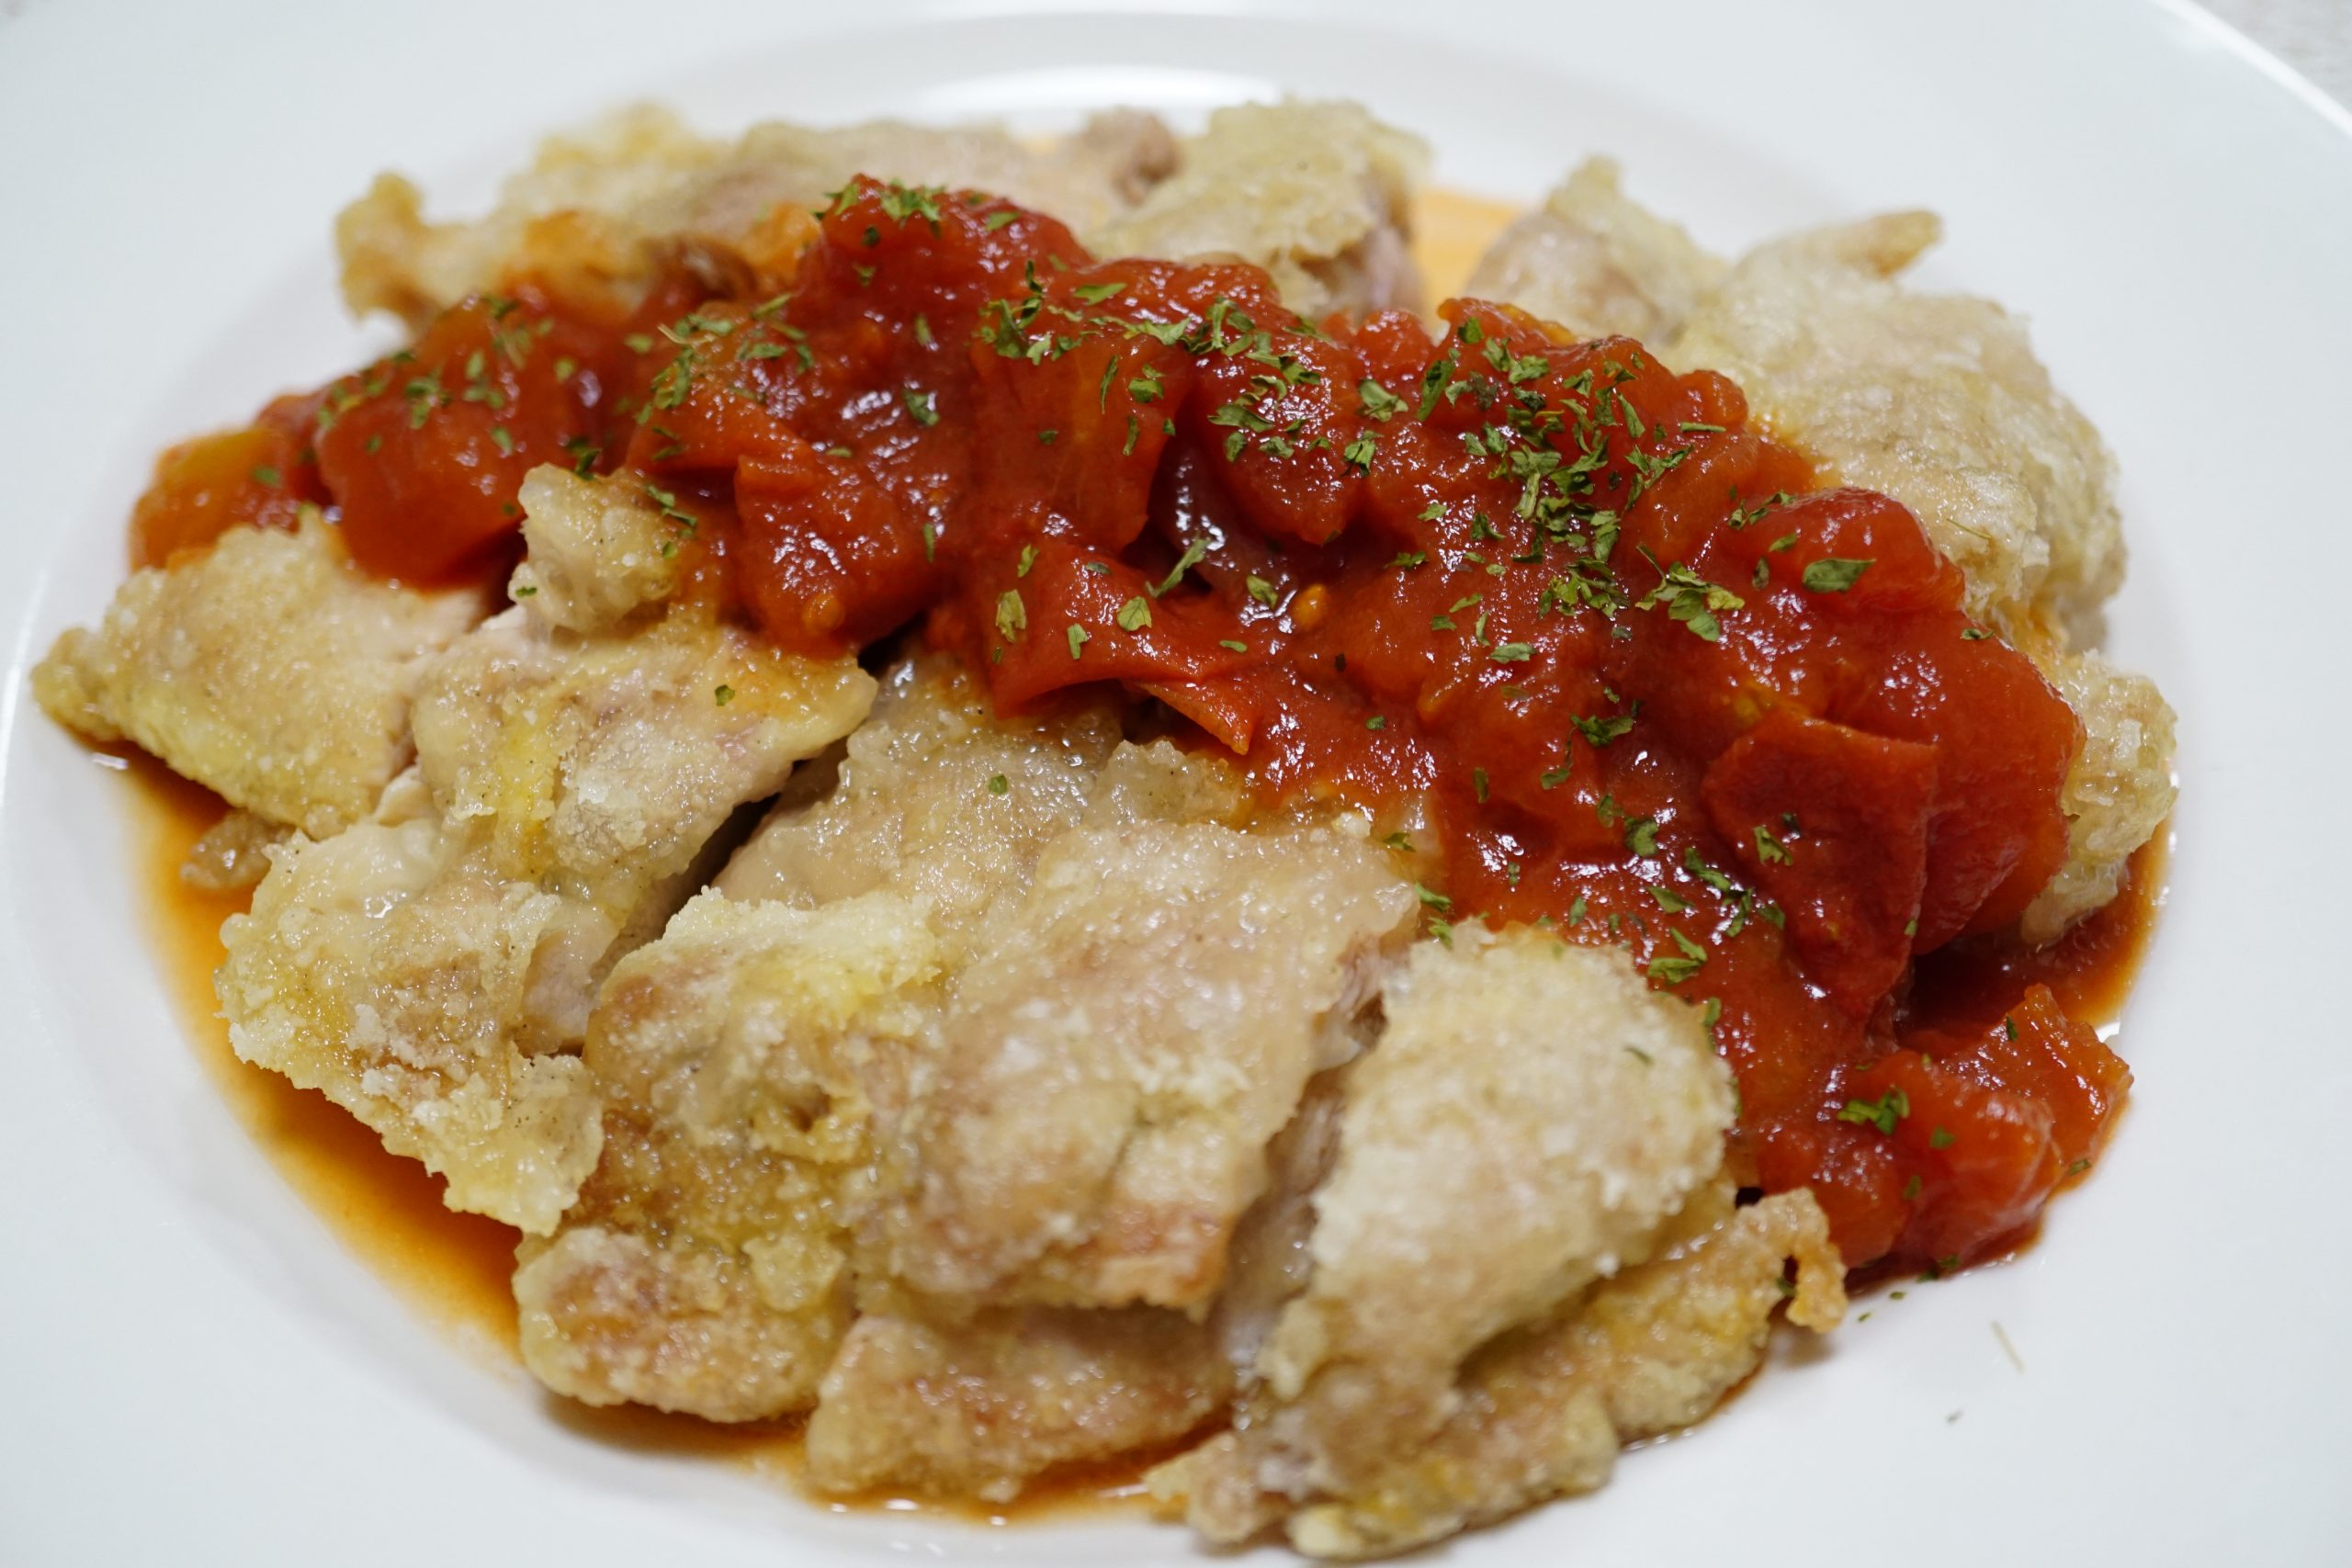 Crispy Chicken with Tomato Ponzu